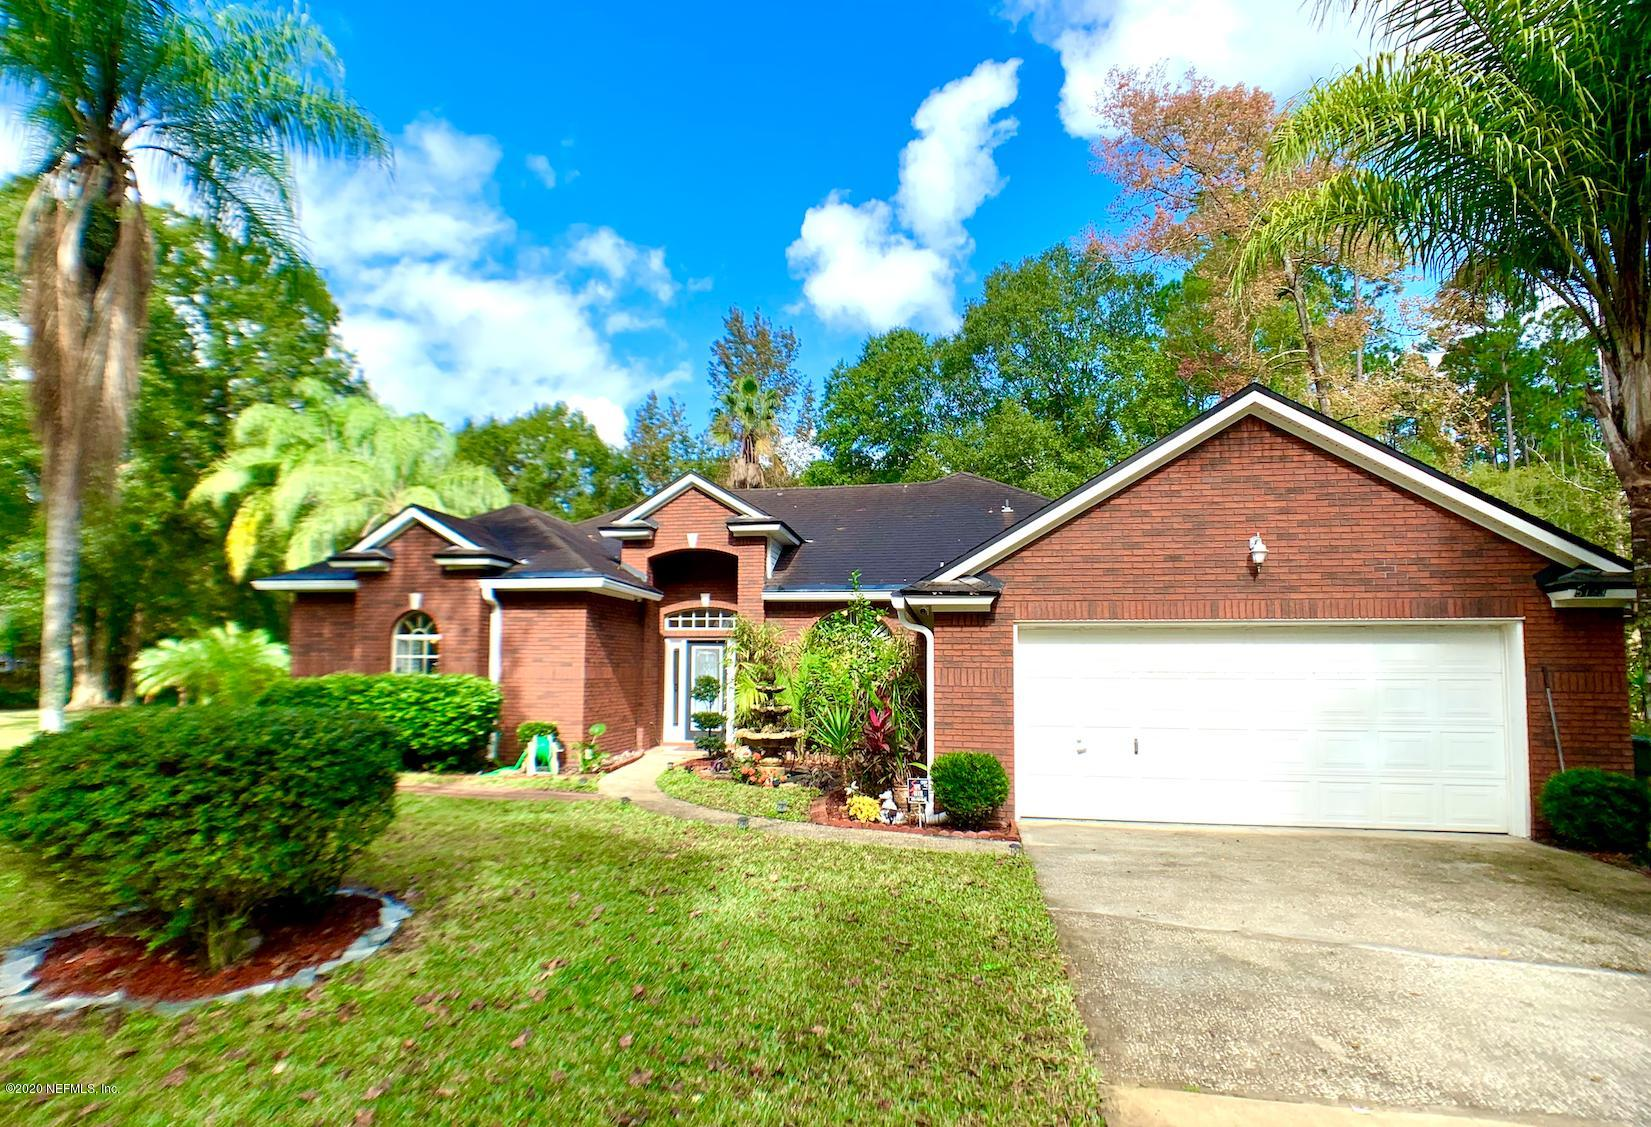 5143 HOOD, JACKSONVILLE, FLORIDA 32257, 4 Bedrooms Bedrooms, ,2 BathroomsBathrooms,Residential,For sale,HOOD,1083263